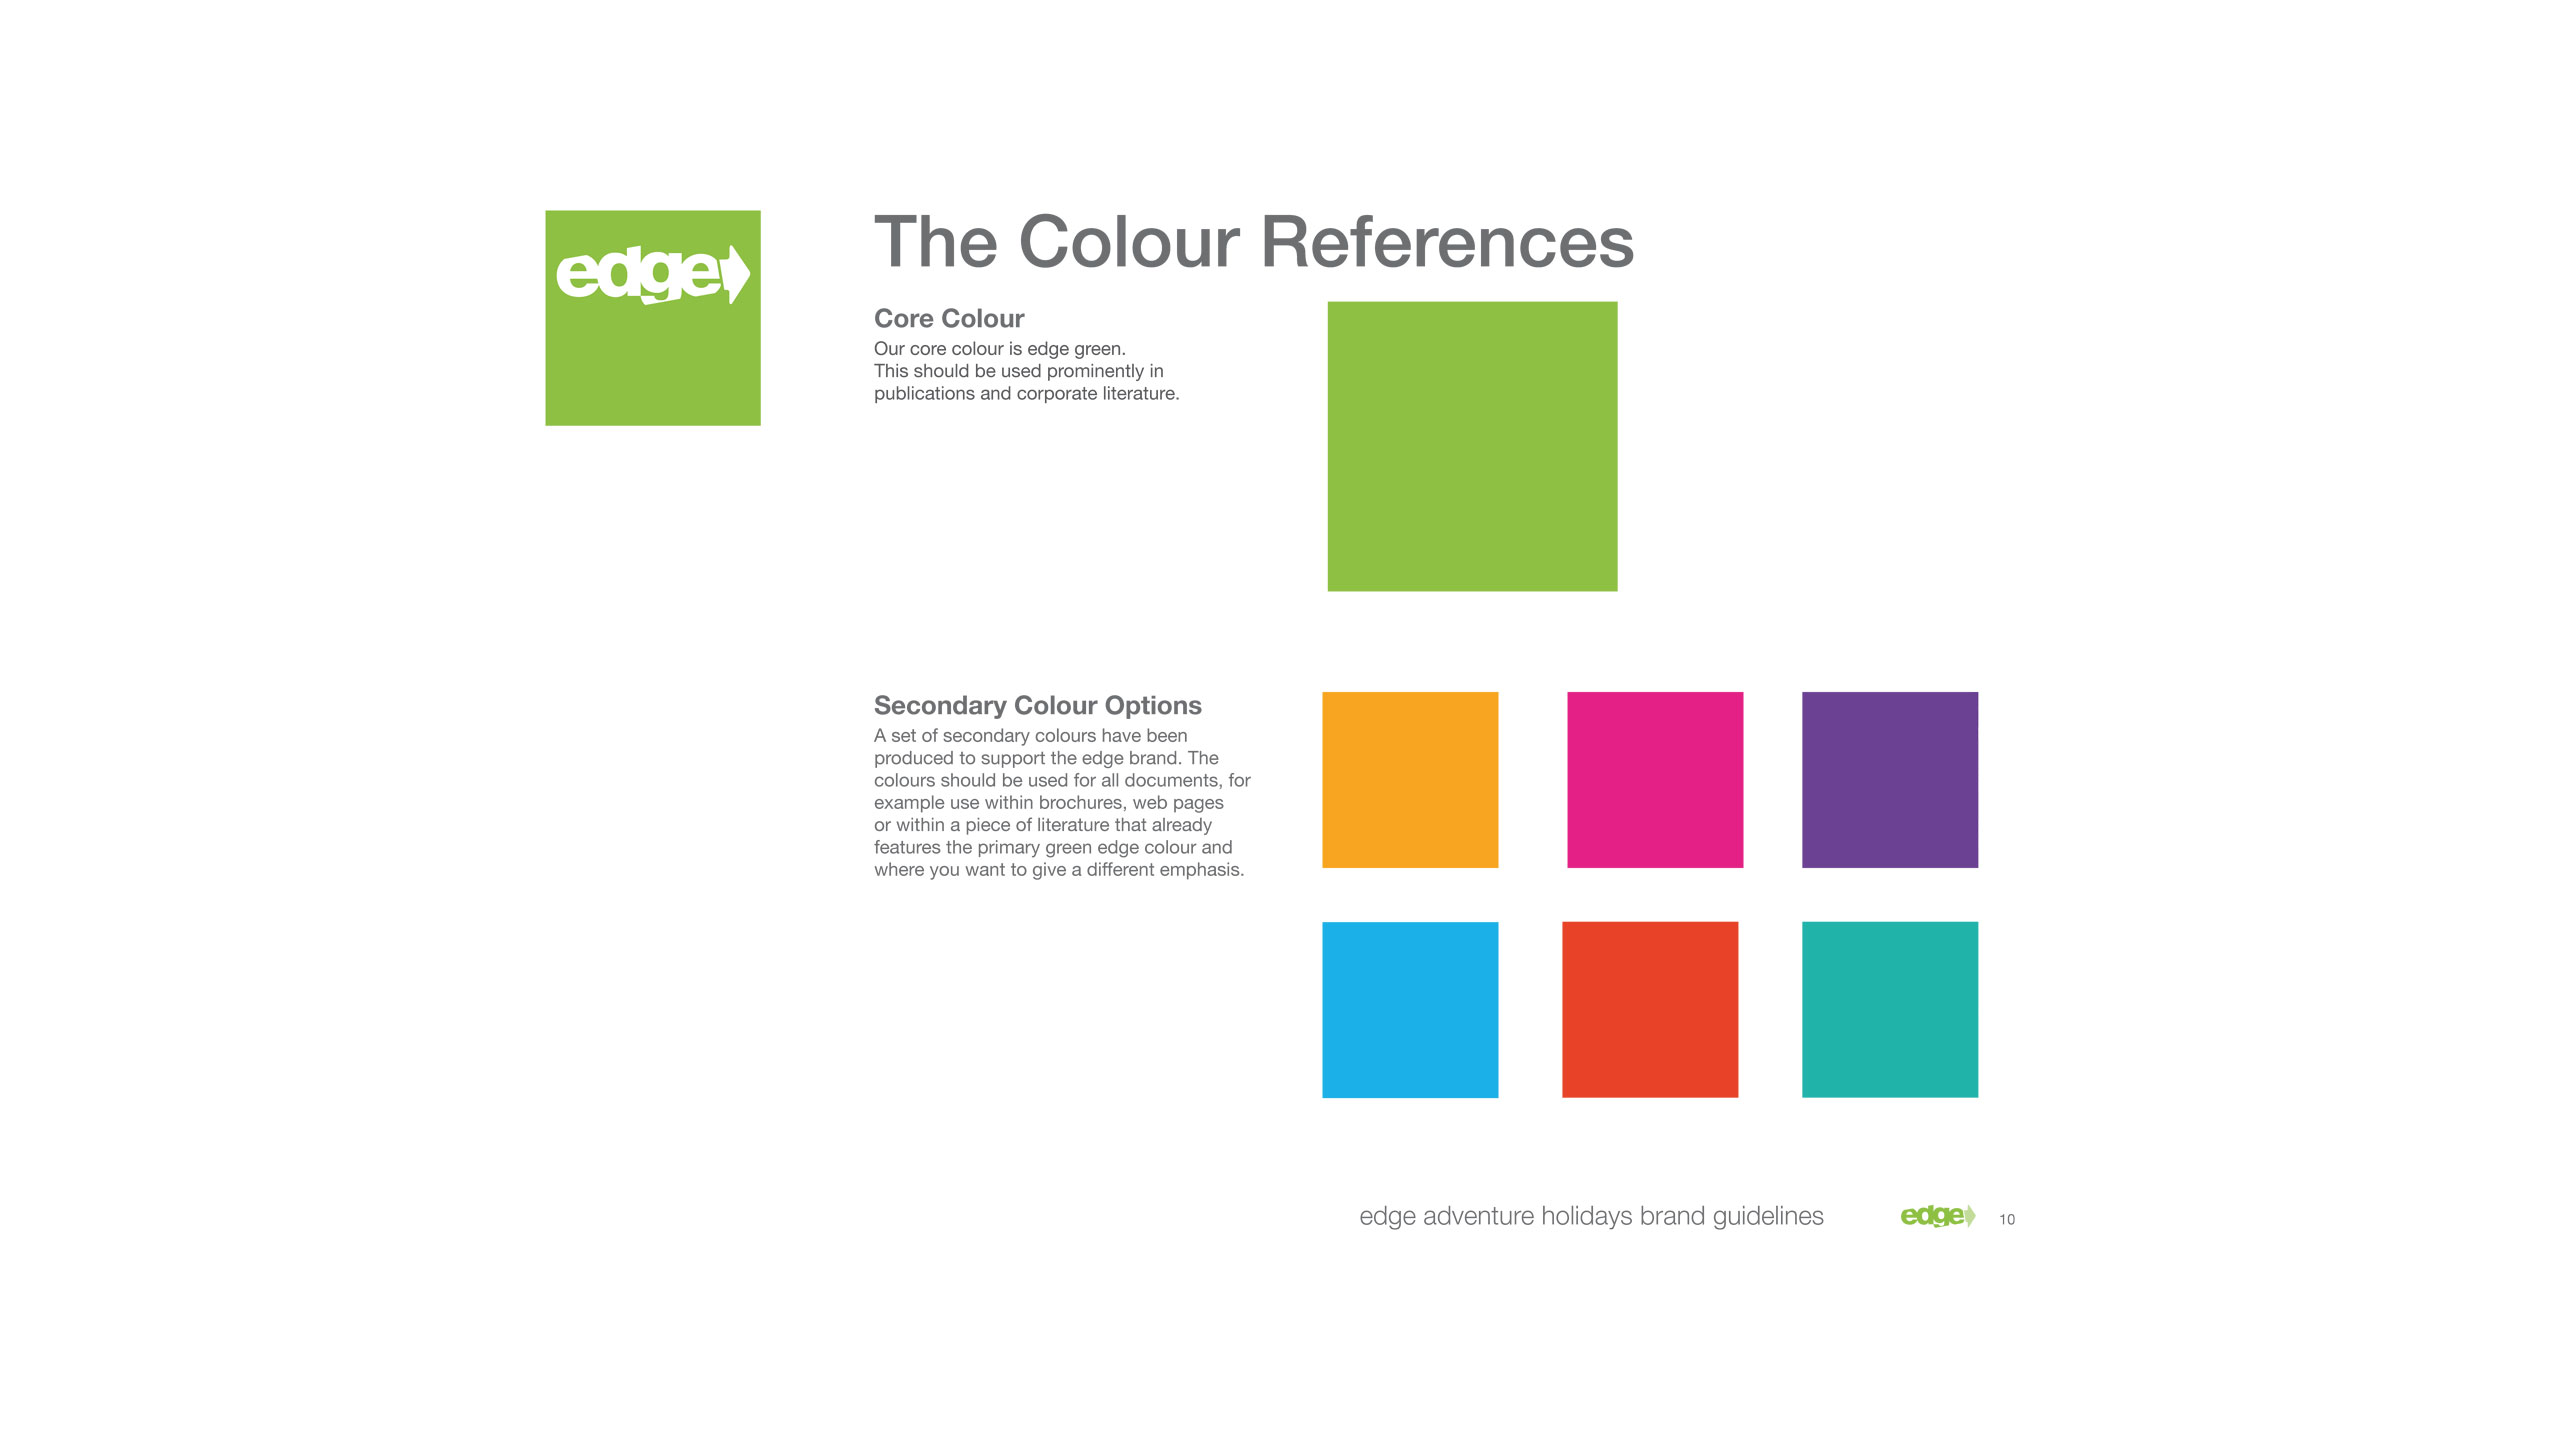 18-30 travel branding brand guidelines colour reference edge adventure